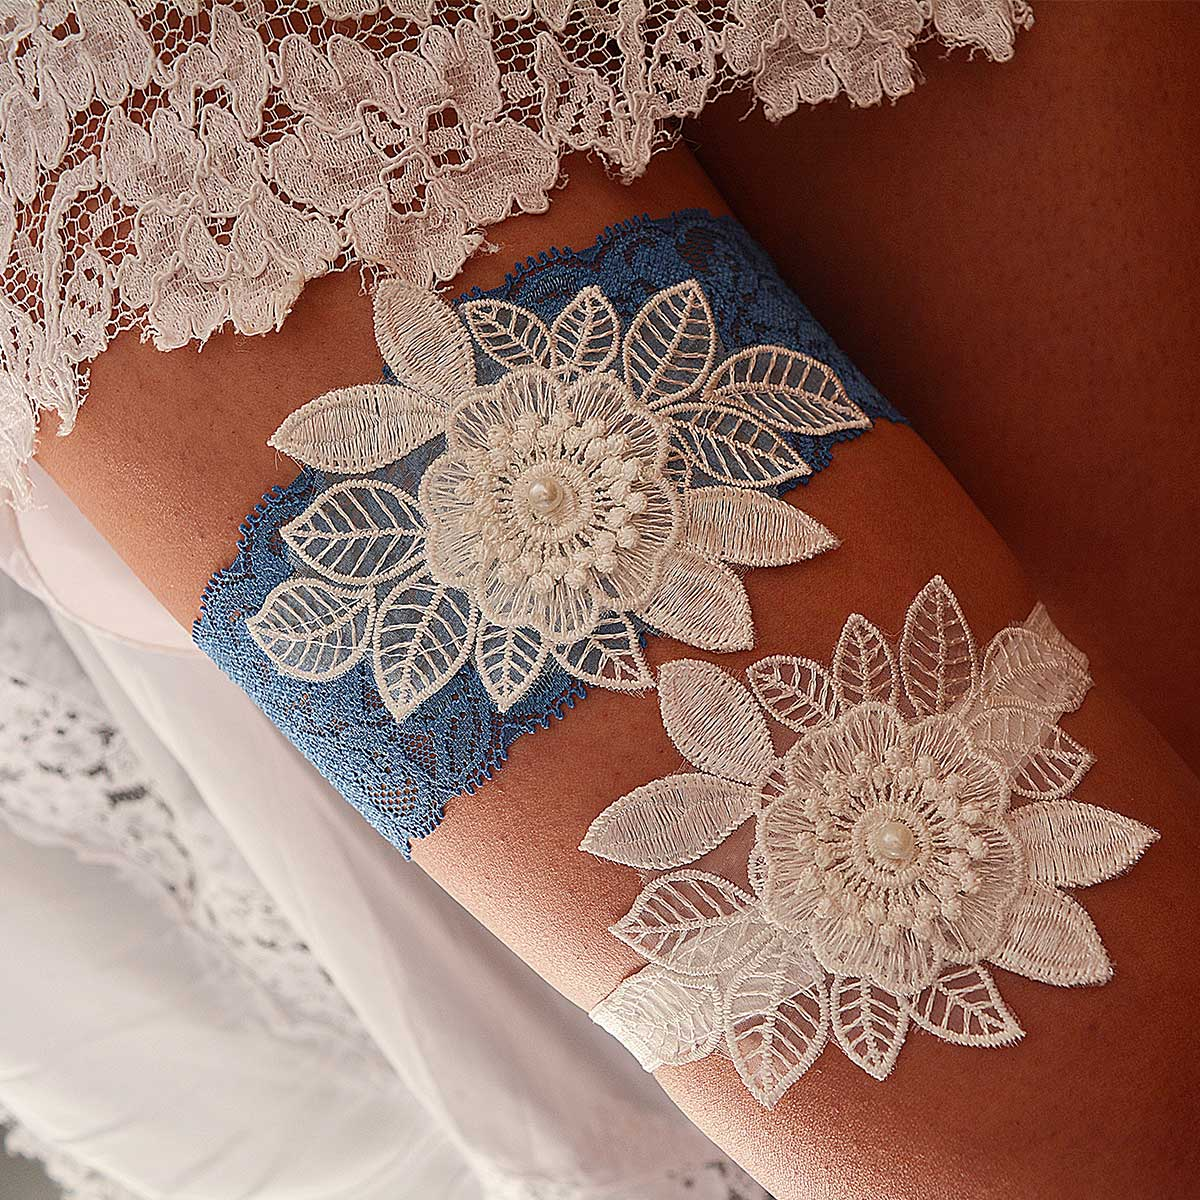 Teal Blue Bridal Garter With 3D White Flower Applique & Pearls - Wedding Garter - SuzannaM Designs